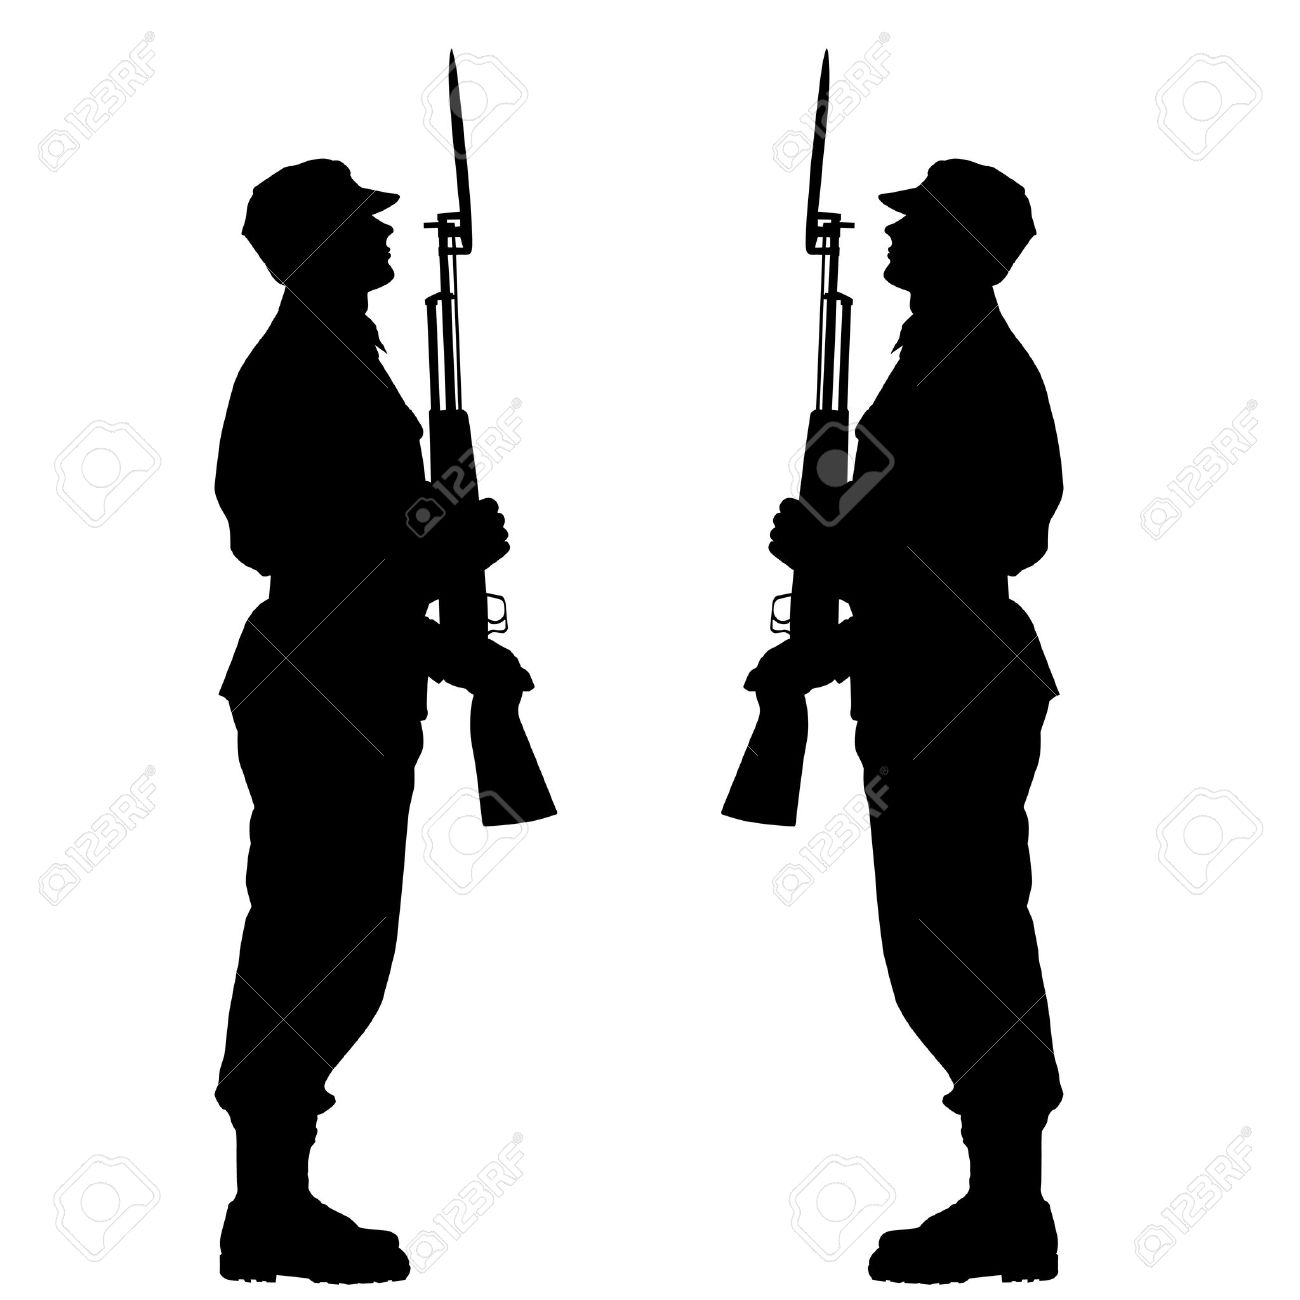 1300x1300 Silhouette Soldiers During A Military Parade Royalty Free Cliparts